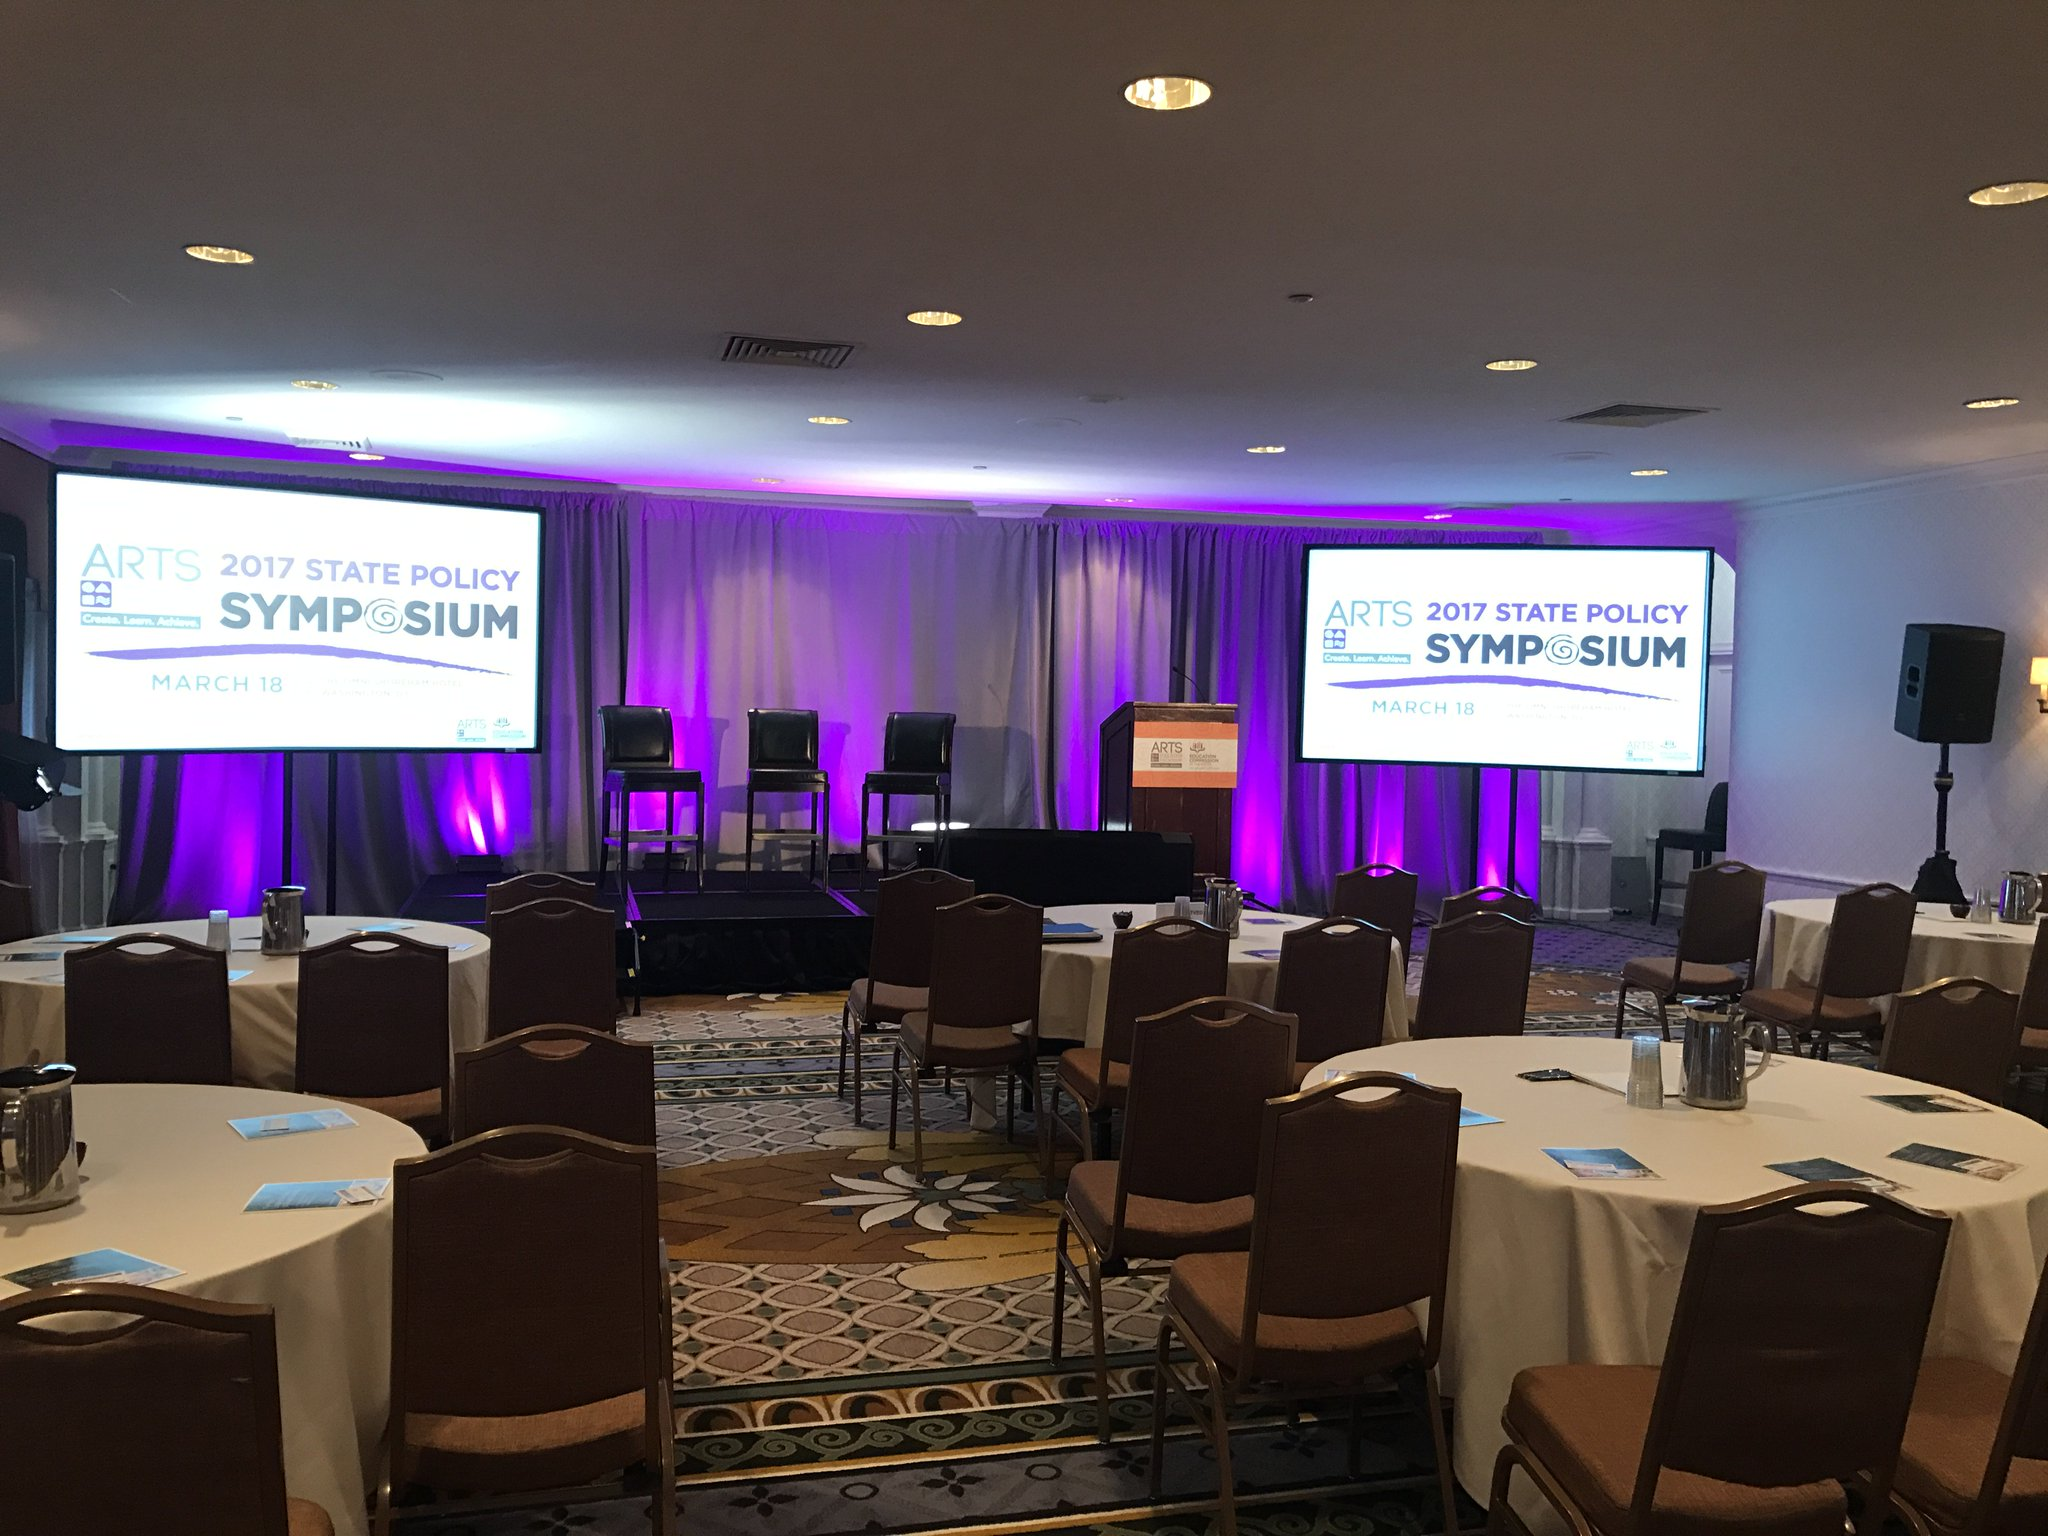 Getting ready to start the 2017 AEP State Policy Symposium in DC! Follow along with the conversation at #AEPSPS17 https://t.co/7aCrnMhU11